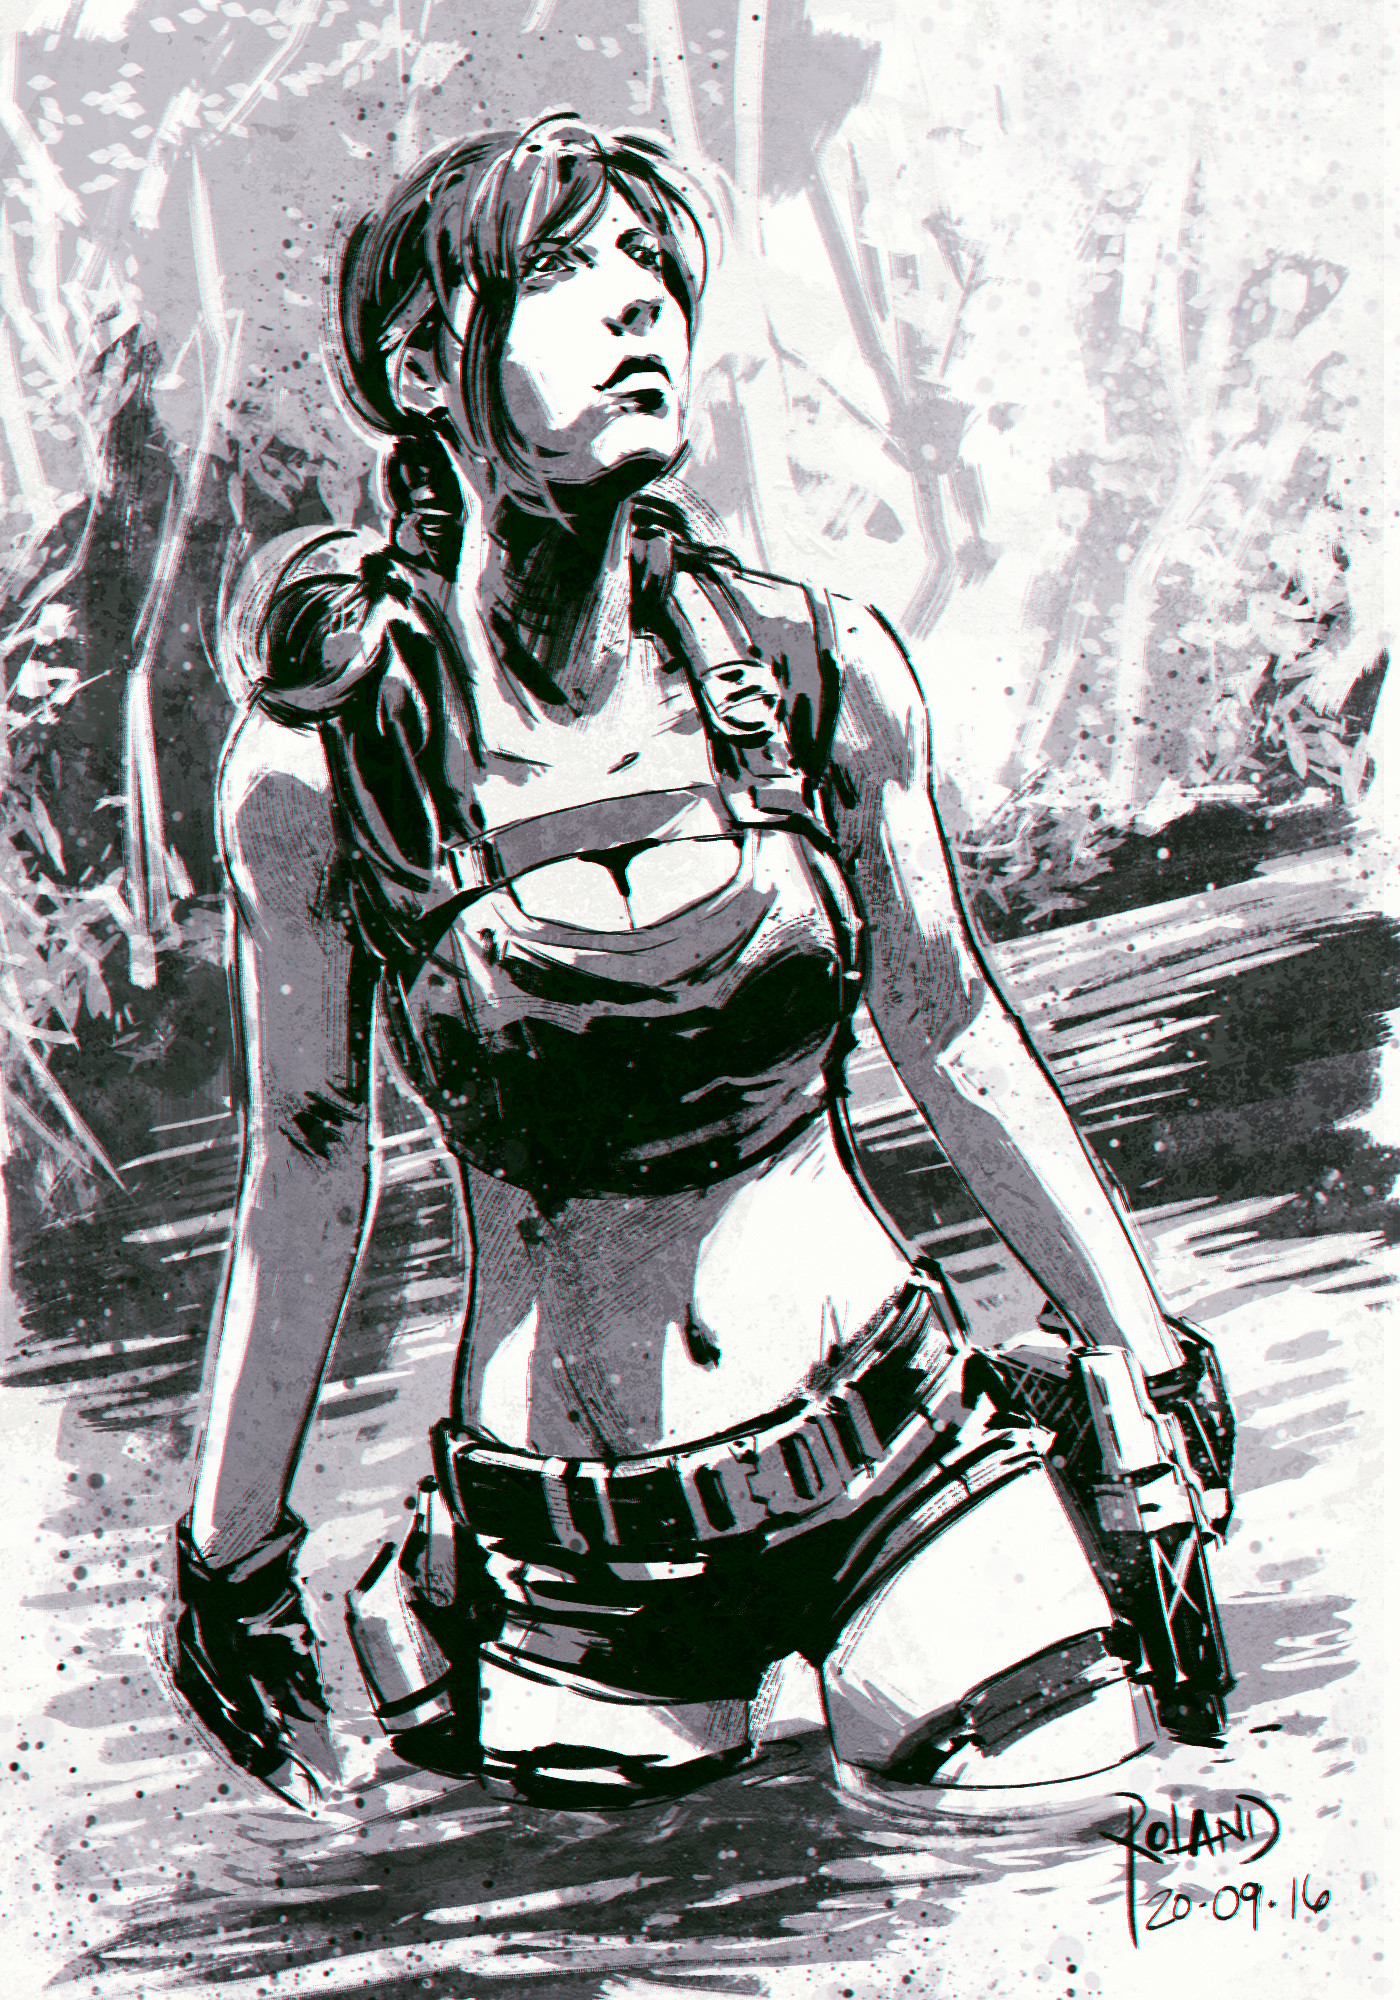 Roland sanchez lara croft sketch 02